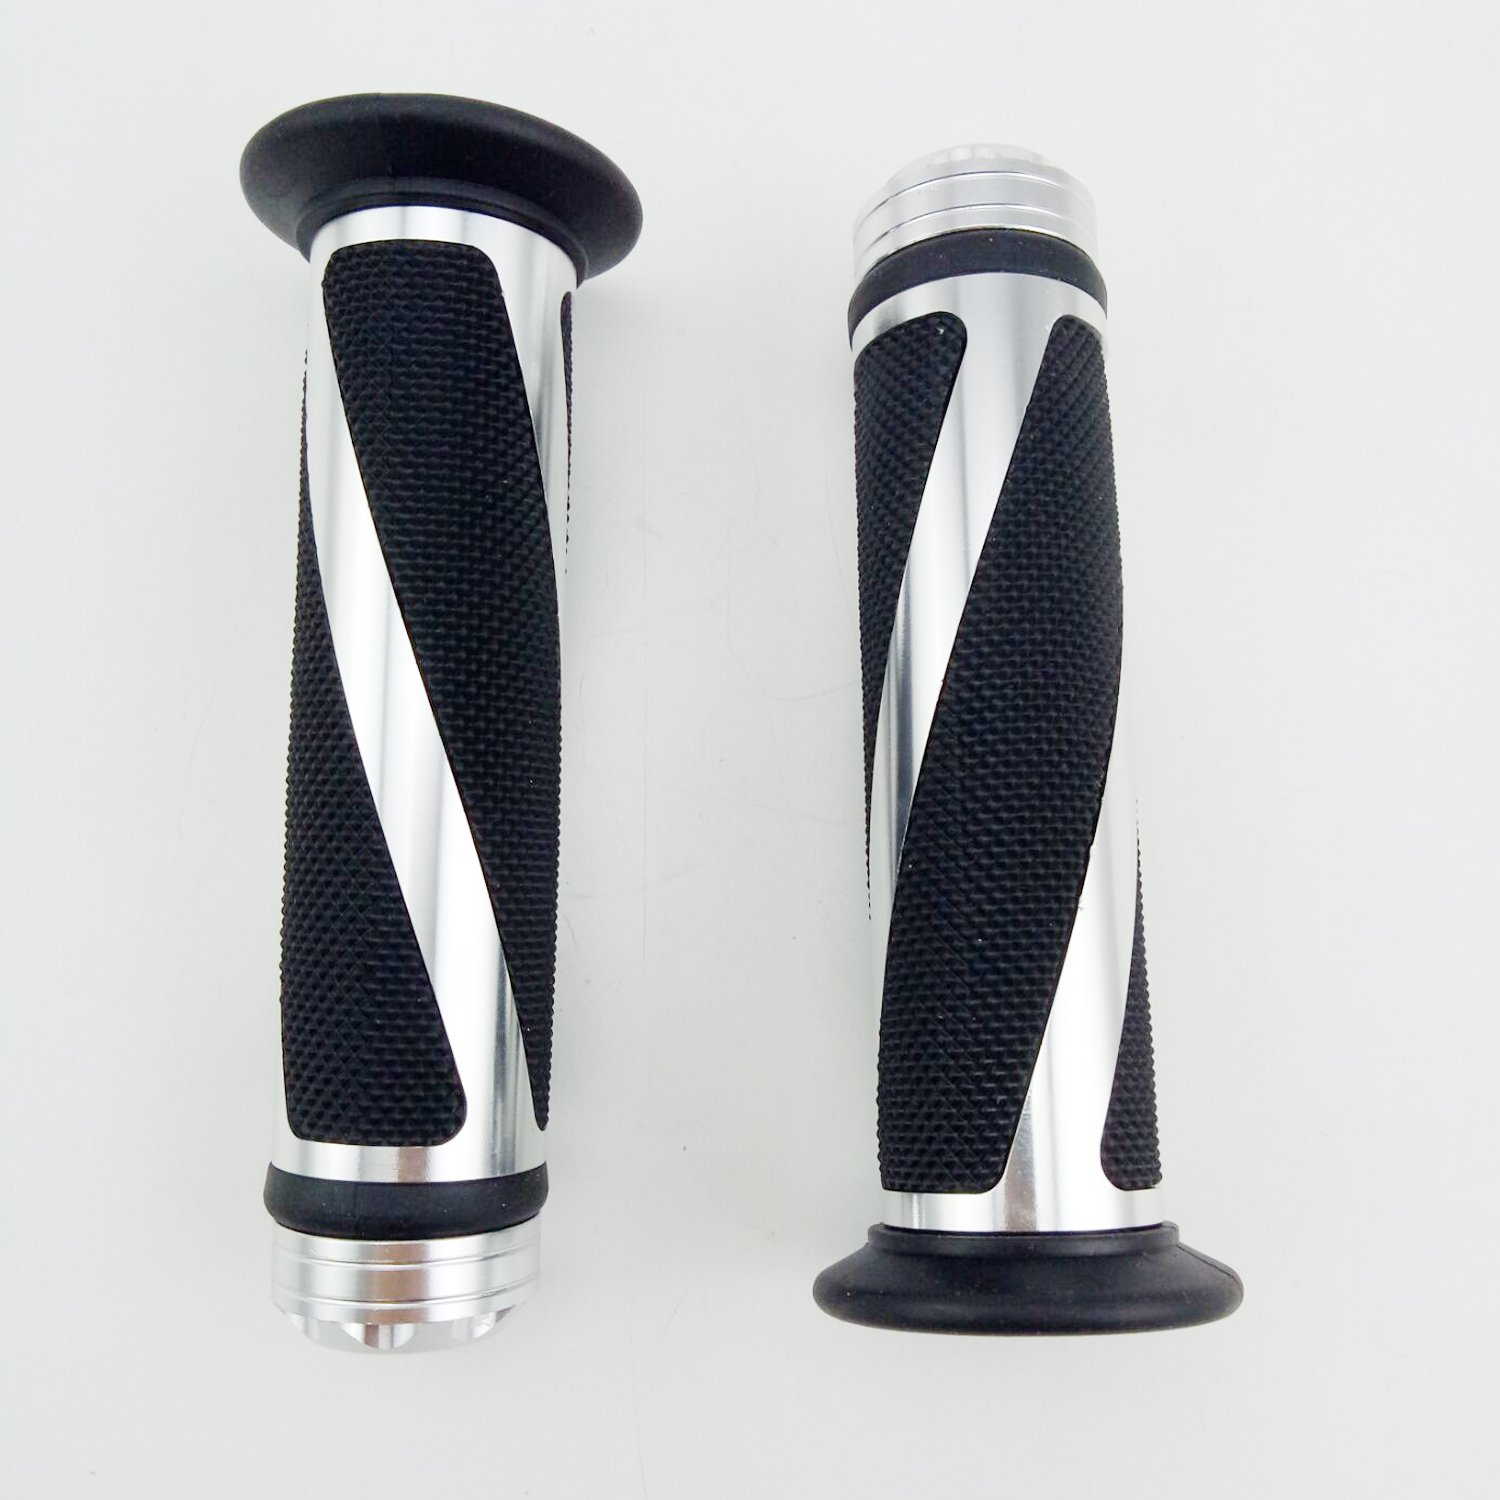 Blue OKSTNO Universal Motorcycle Rubber Gel Handlebar Hand Grips for 7//8 Bar End Handle Bars Sports Bikes